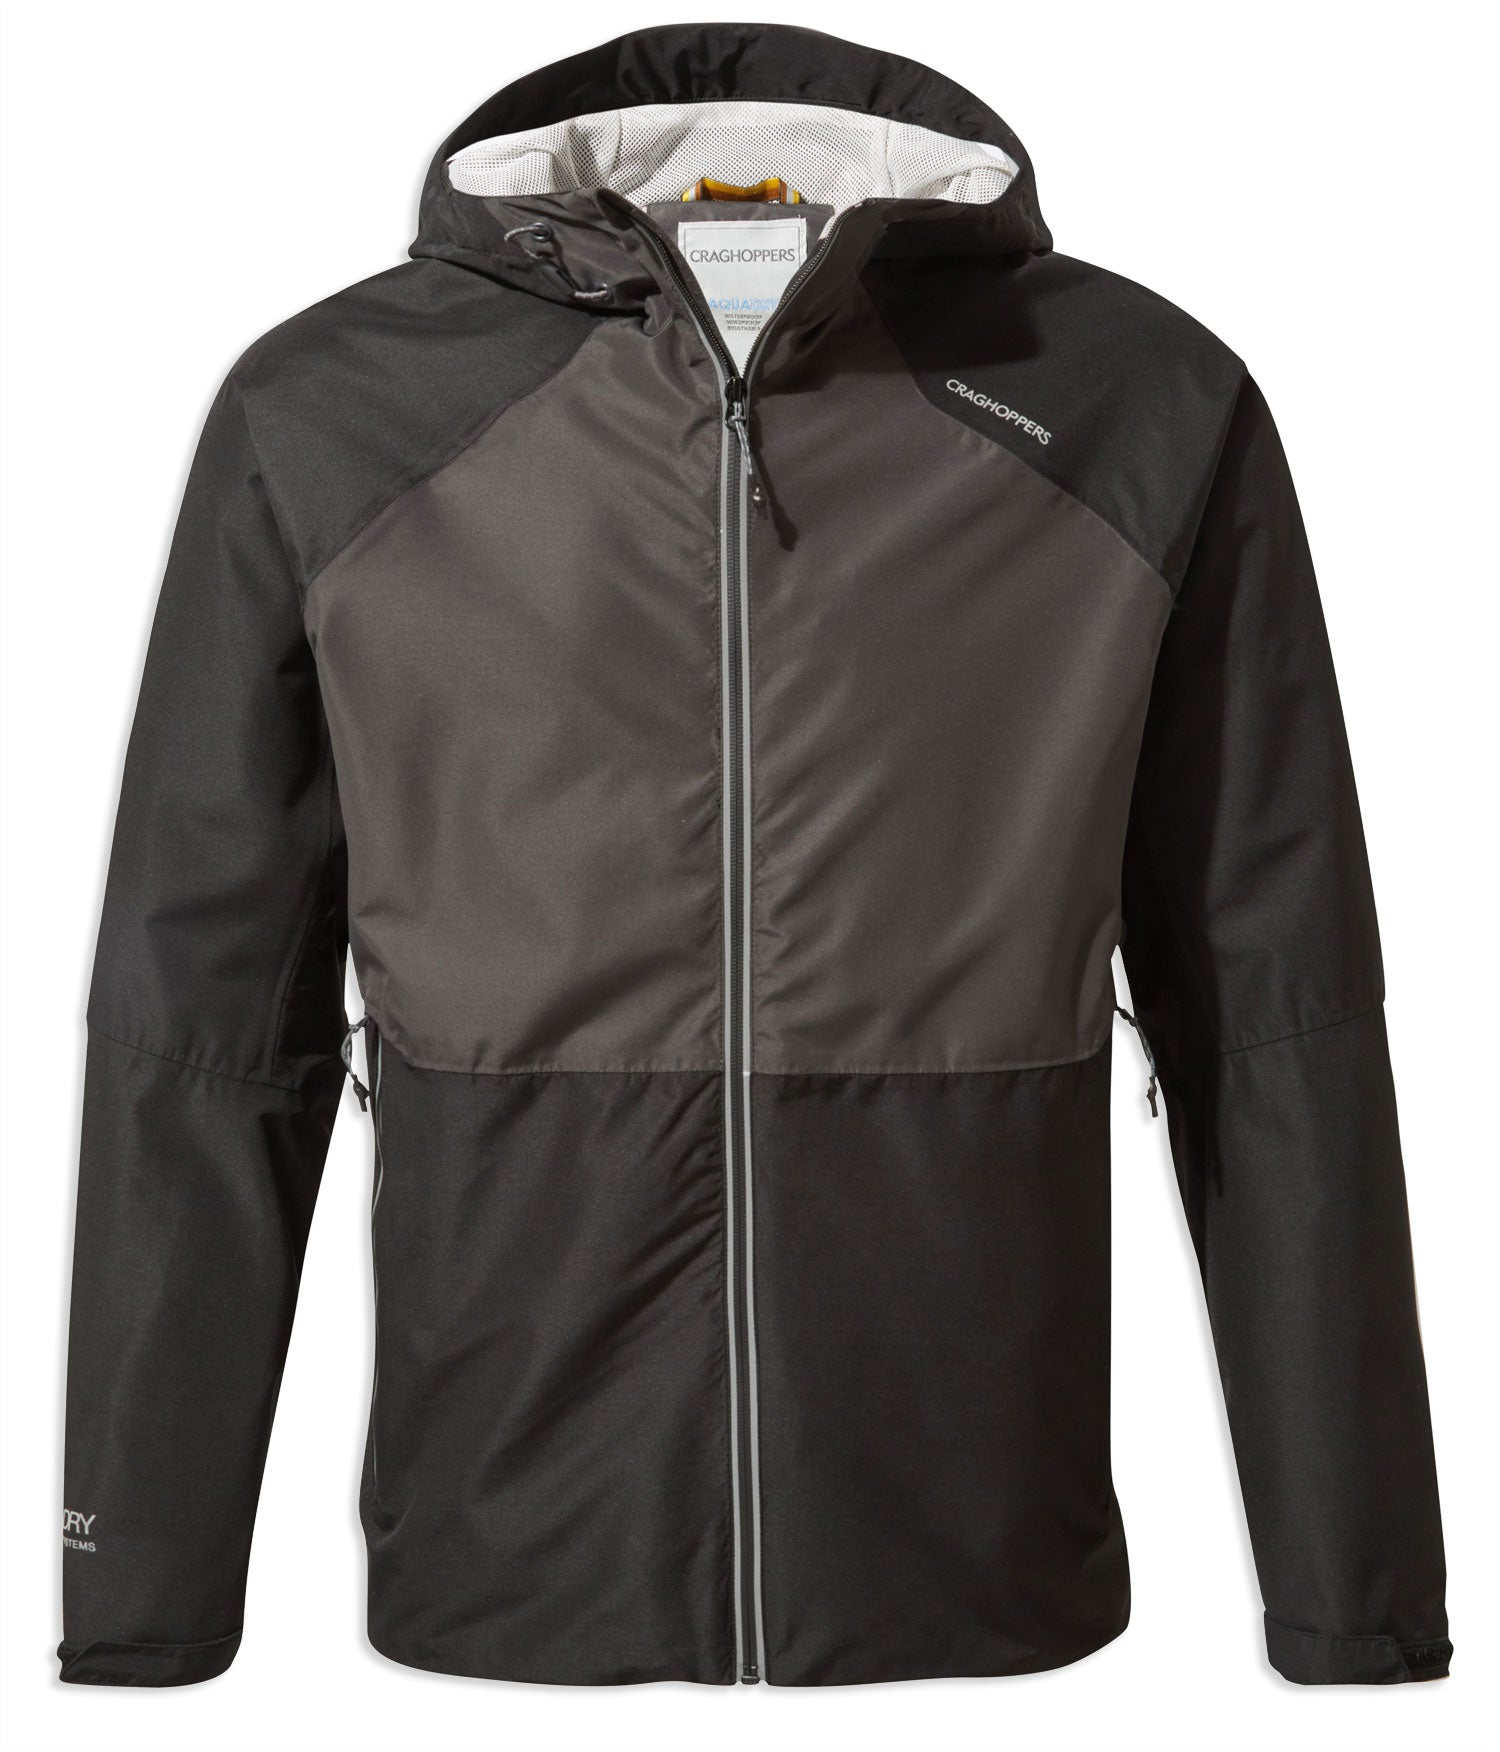 Craghoppers Horizon Jacket | Black